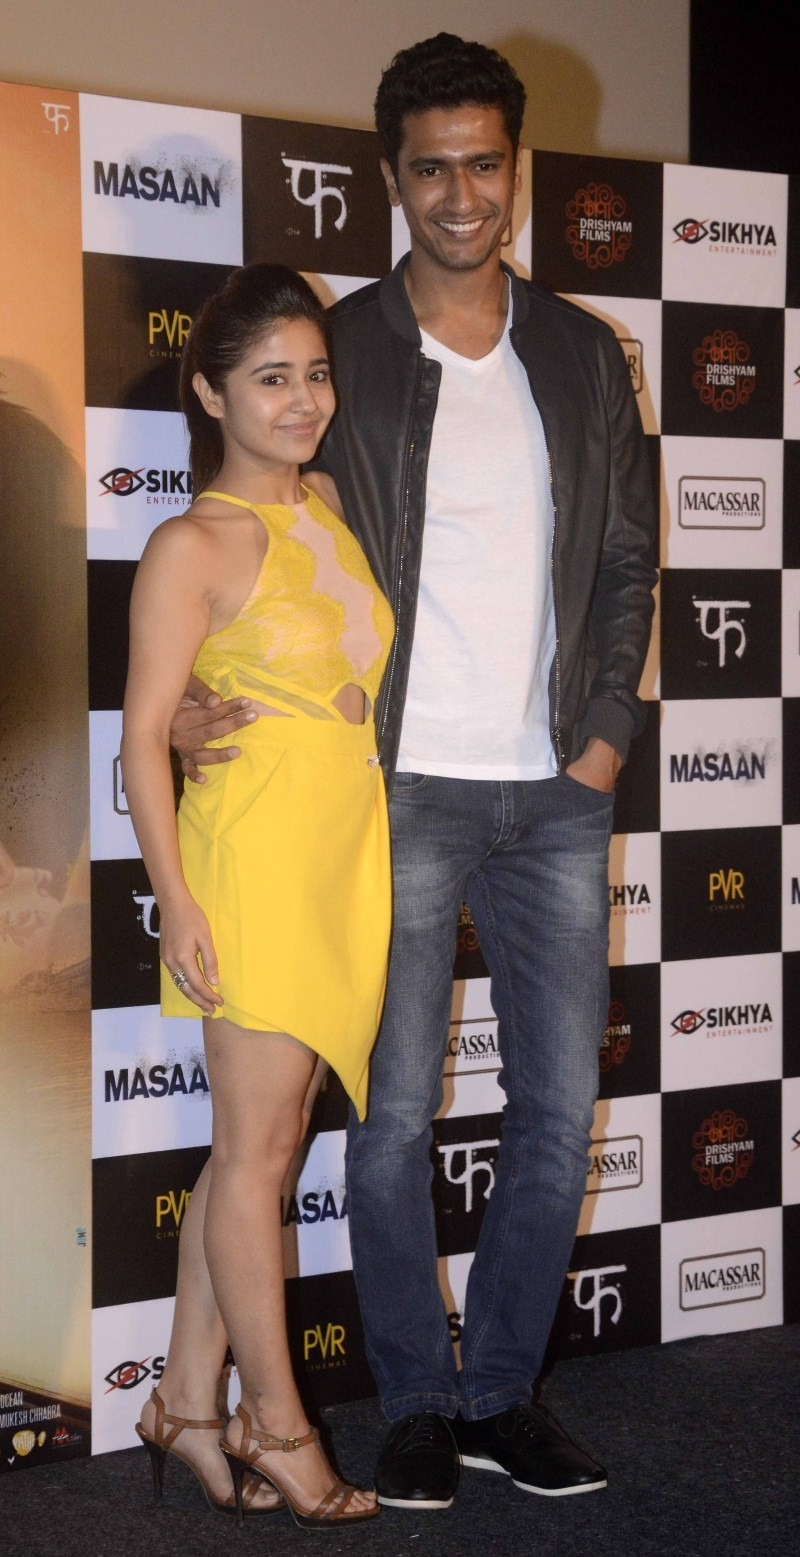 Masaan Trailer Launch,Masaan Trailer,Masaan,Masaan Trailer Launch pics,Masaan Trailer Launch images,Masaan Trailer Launch photos,Masaan Trailer Launch stills,Masaan Trailer Launch pictures